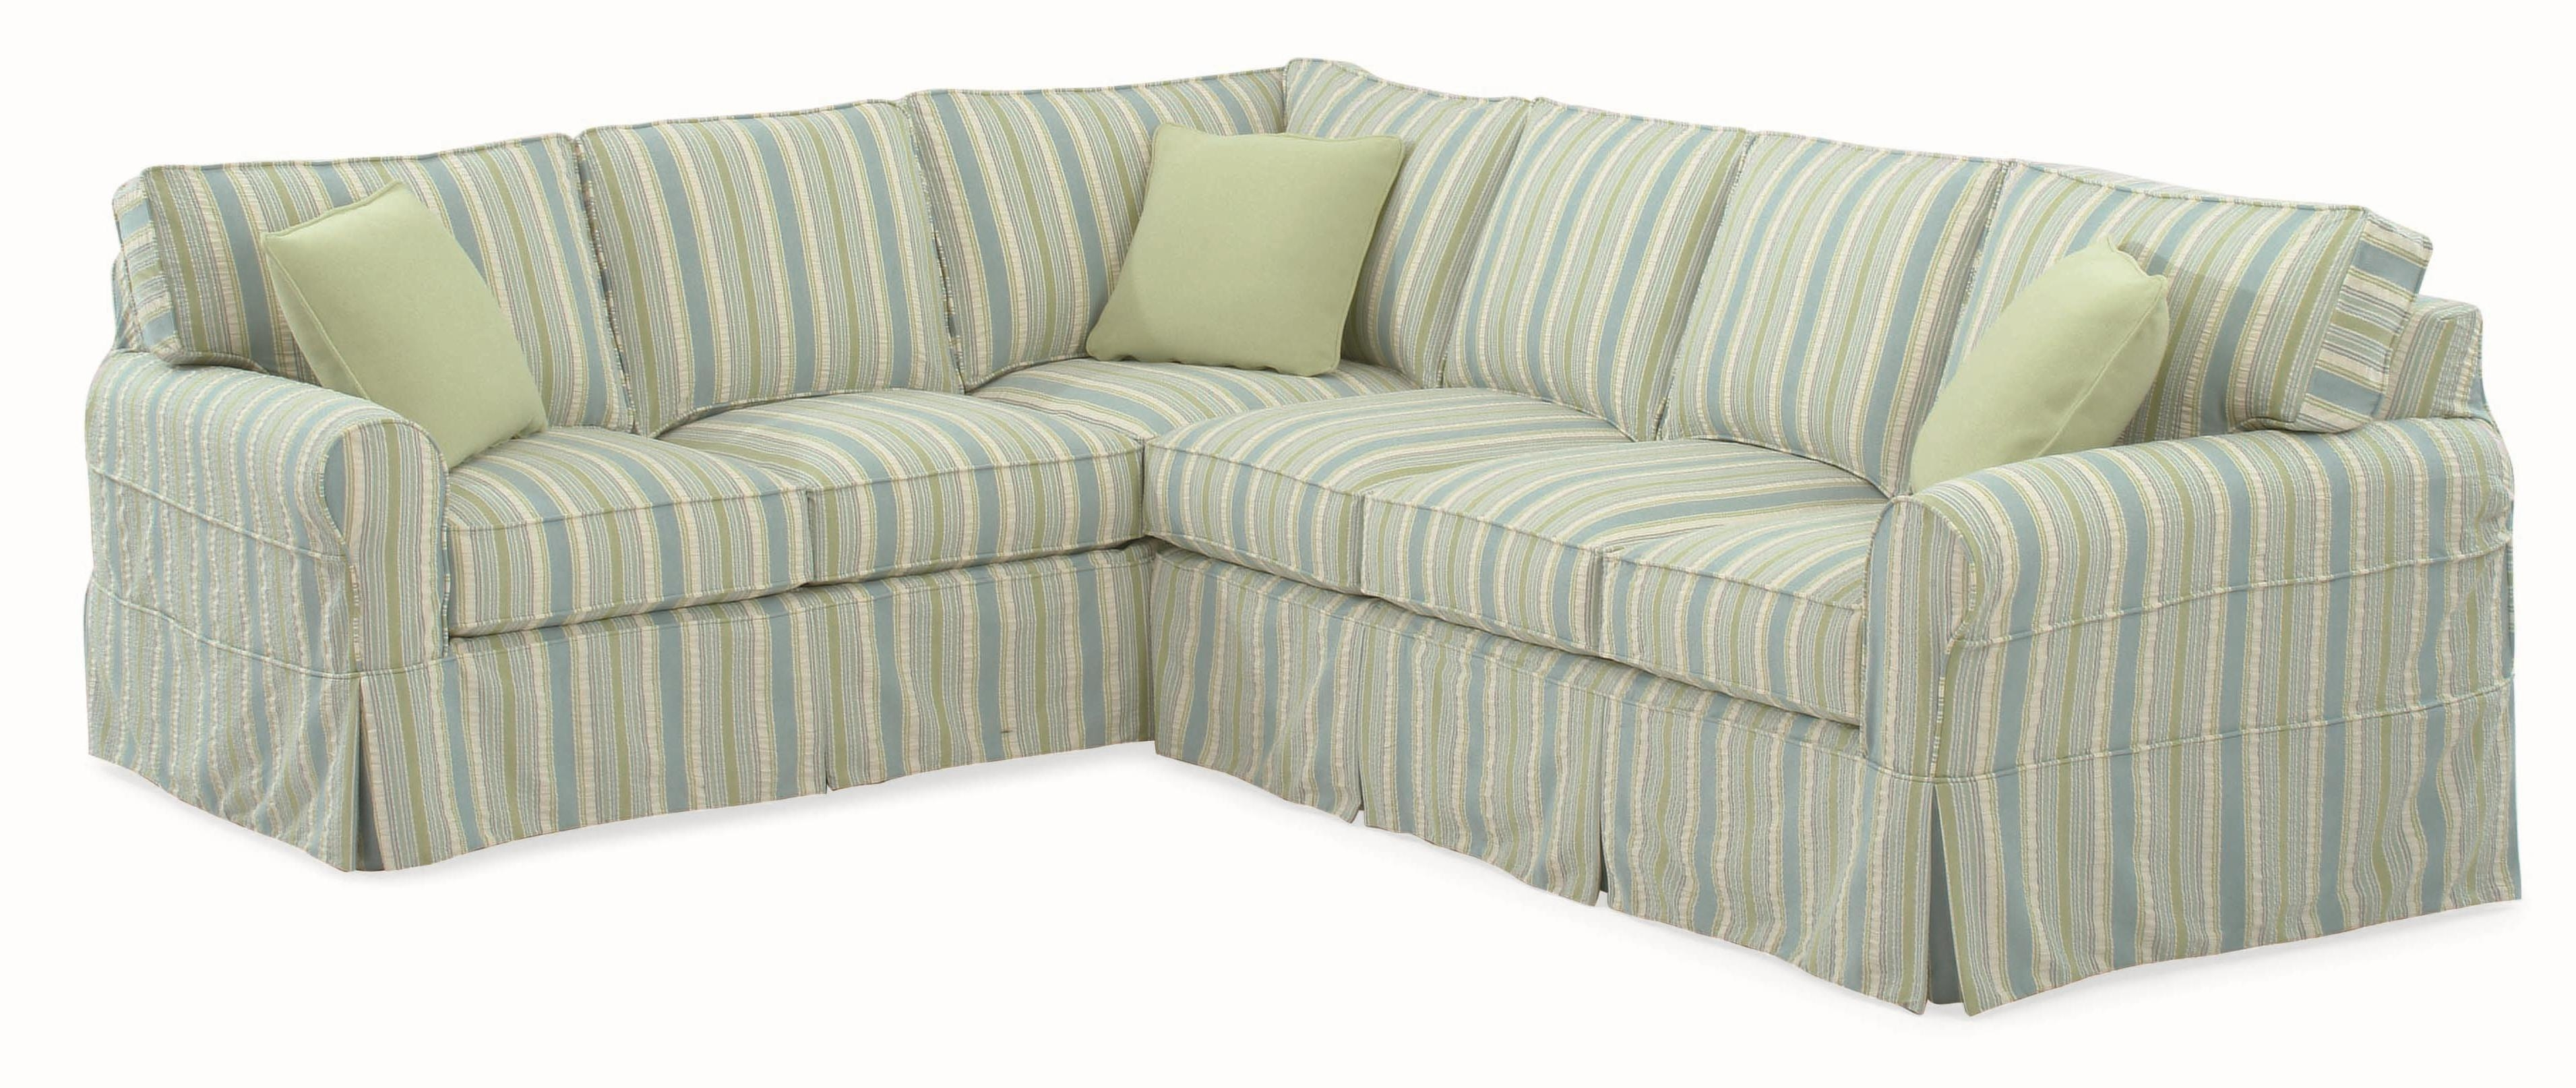 Furniture: Creates Clean Foundation That Complements Decorating With Regard To Slipcover Style Sofas (View 16 of 20)